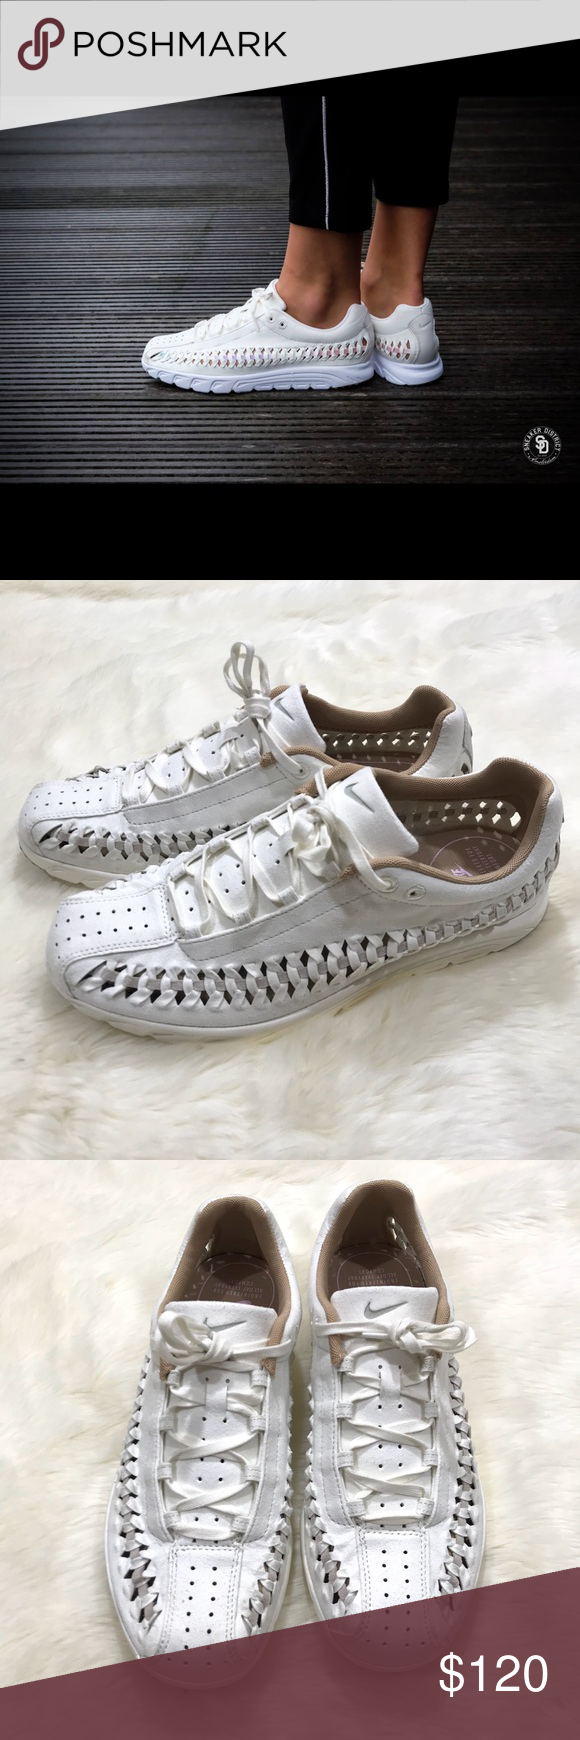 Nike Mayfly Woven Sail Stardust Sneakers 11 NWOB Wmns Nike Mayfly Woven  Sail Stardust Women Casual c7ebc4825